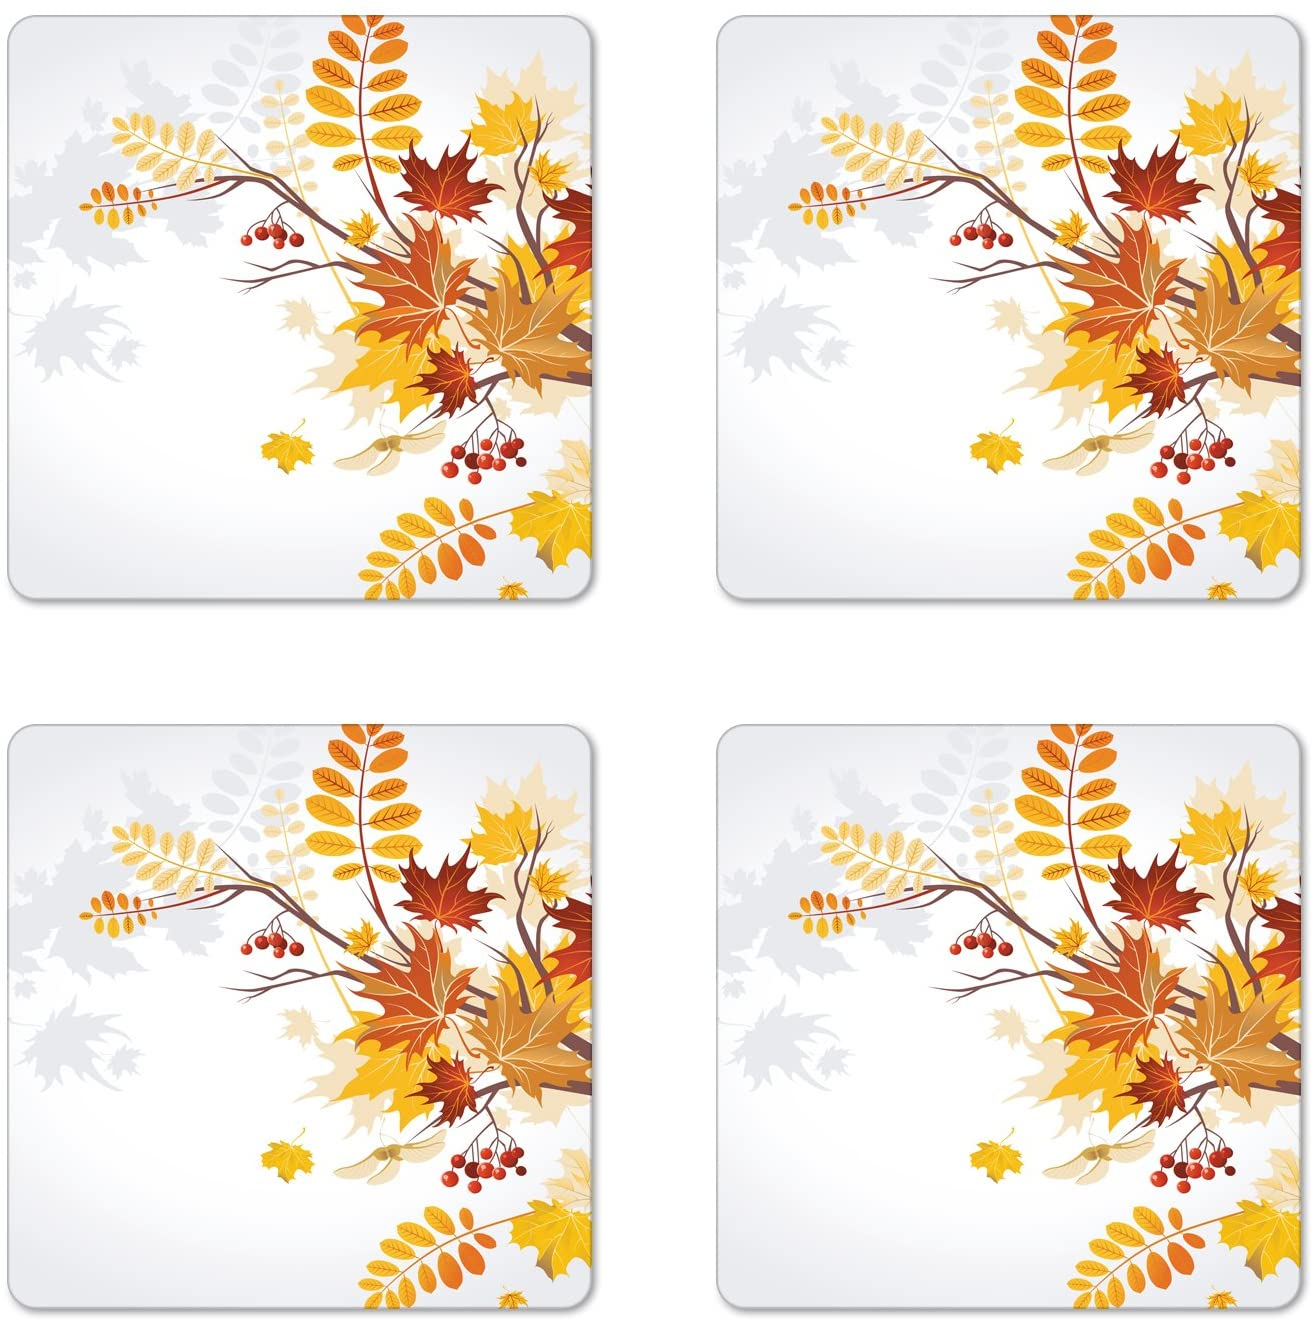 Lunarable Fall Coaster Set of 4, Various Faded Fall Leaves Bouquet November Environment Foliage Romantic Graphic, Square Hardboard Gloss Coasters, Standard Size, Orange Yellow